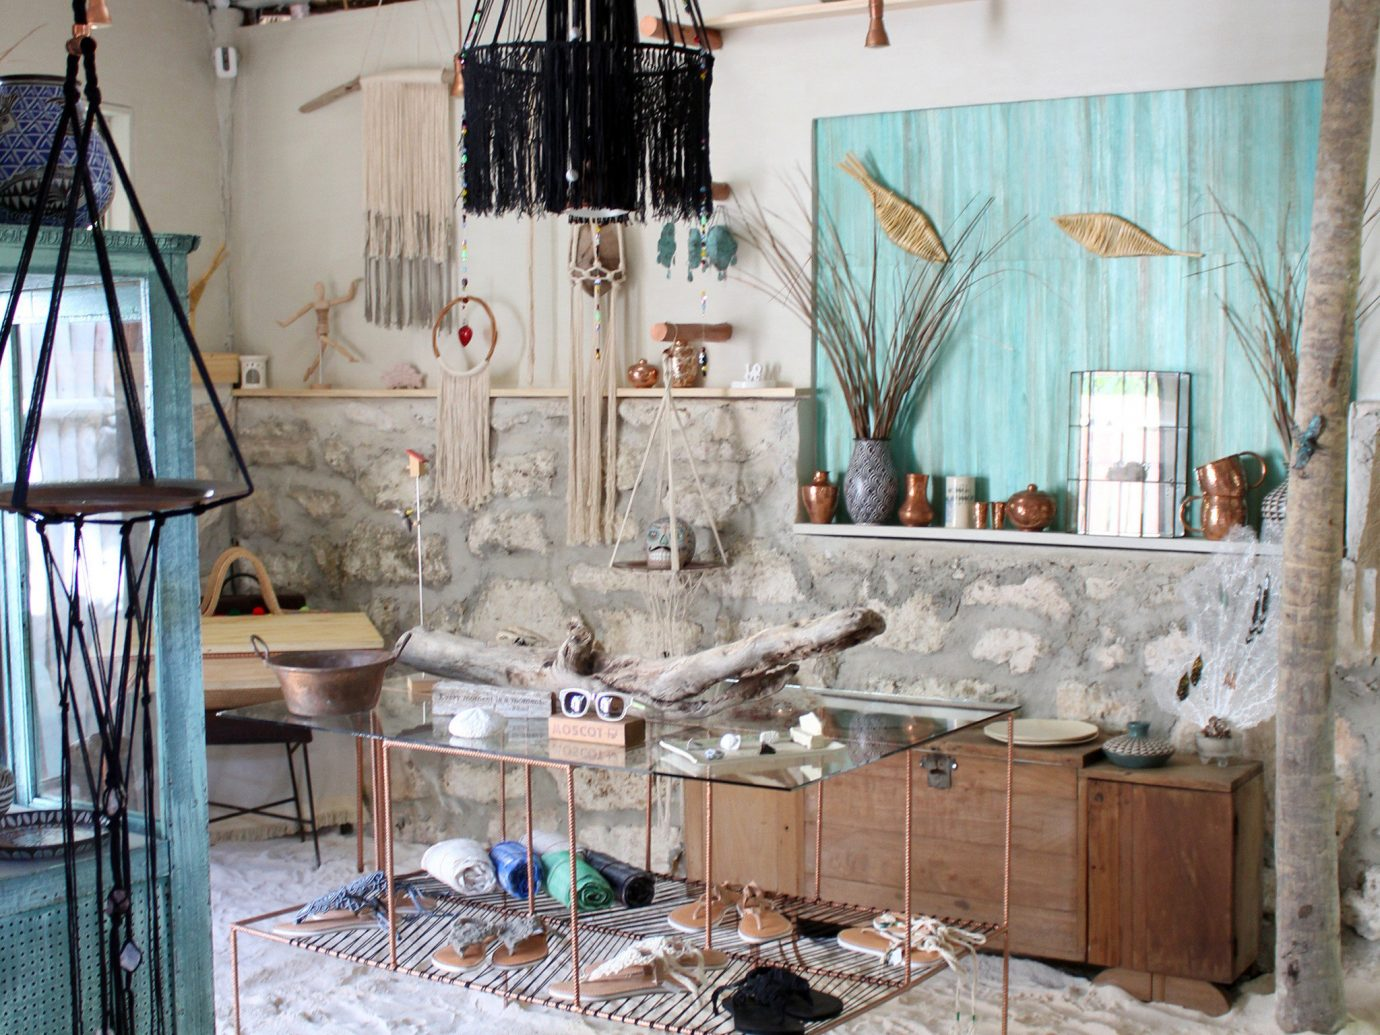 City Mexico Trip Ideas Tulum Winter window interior design